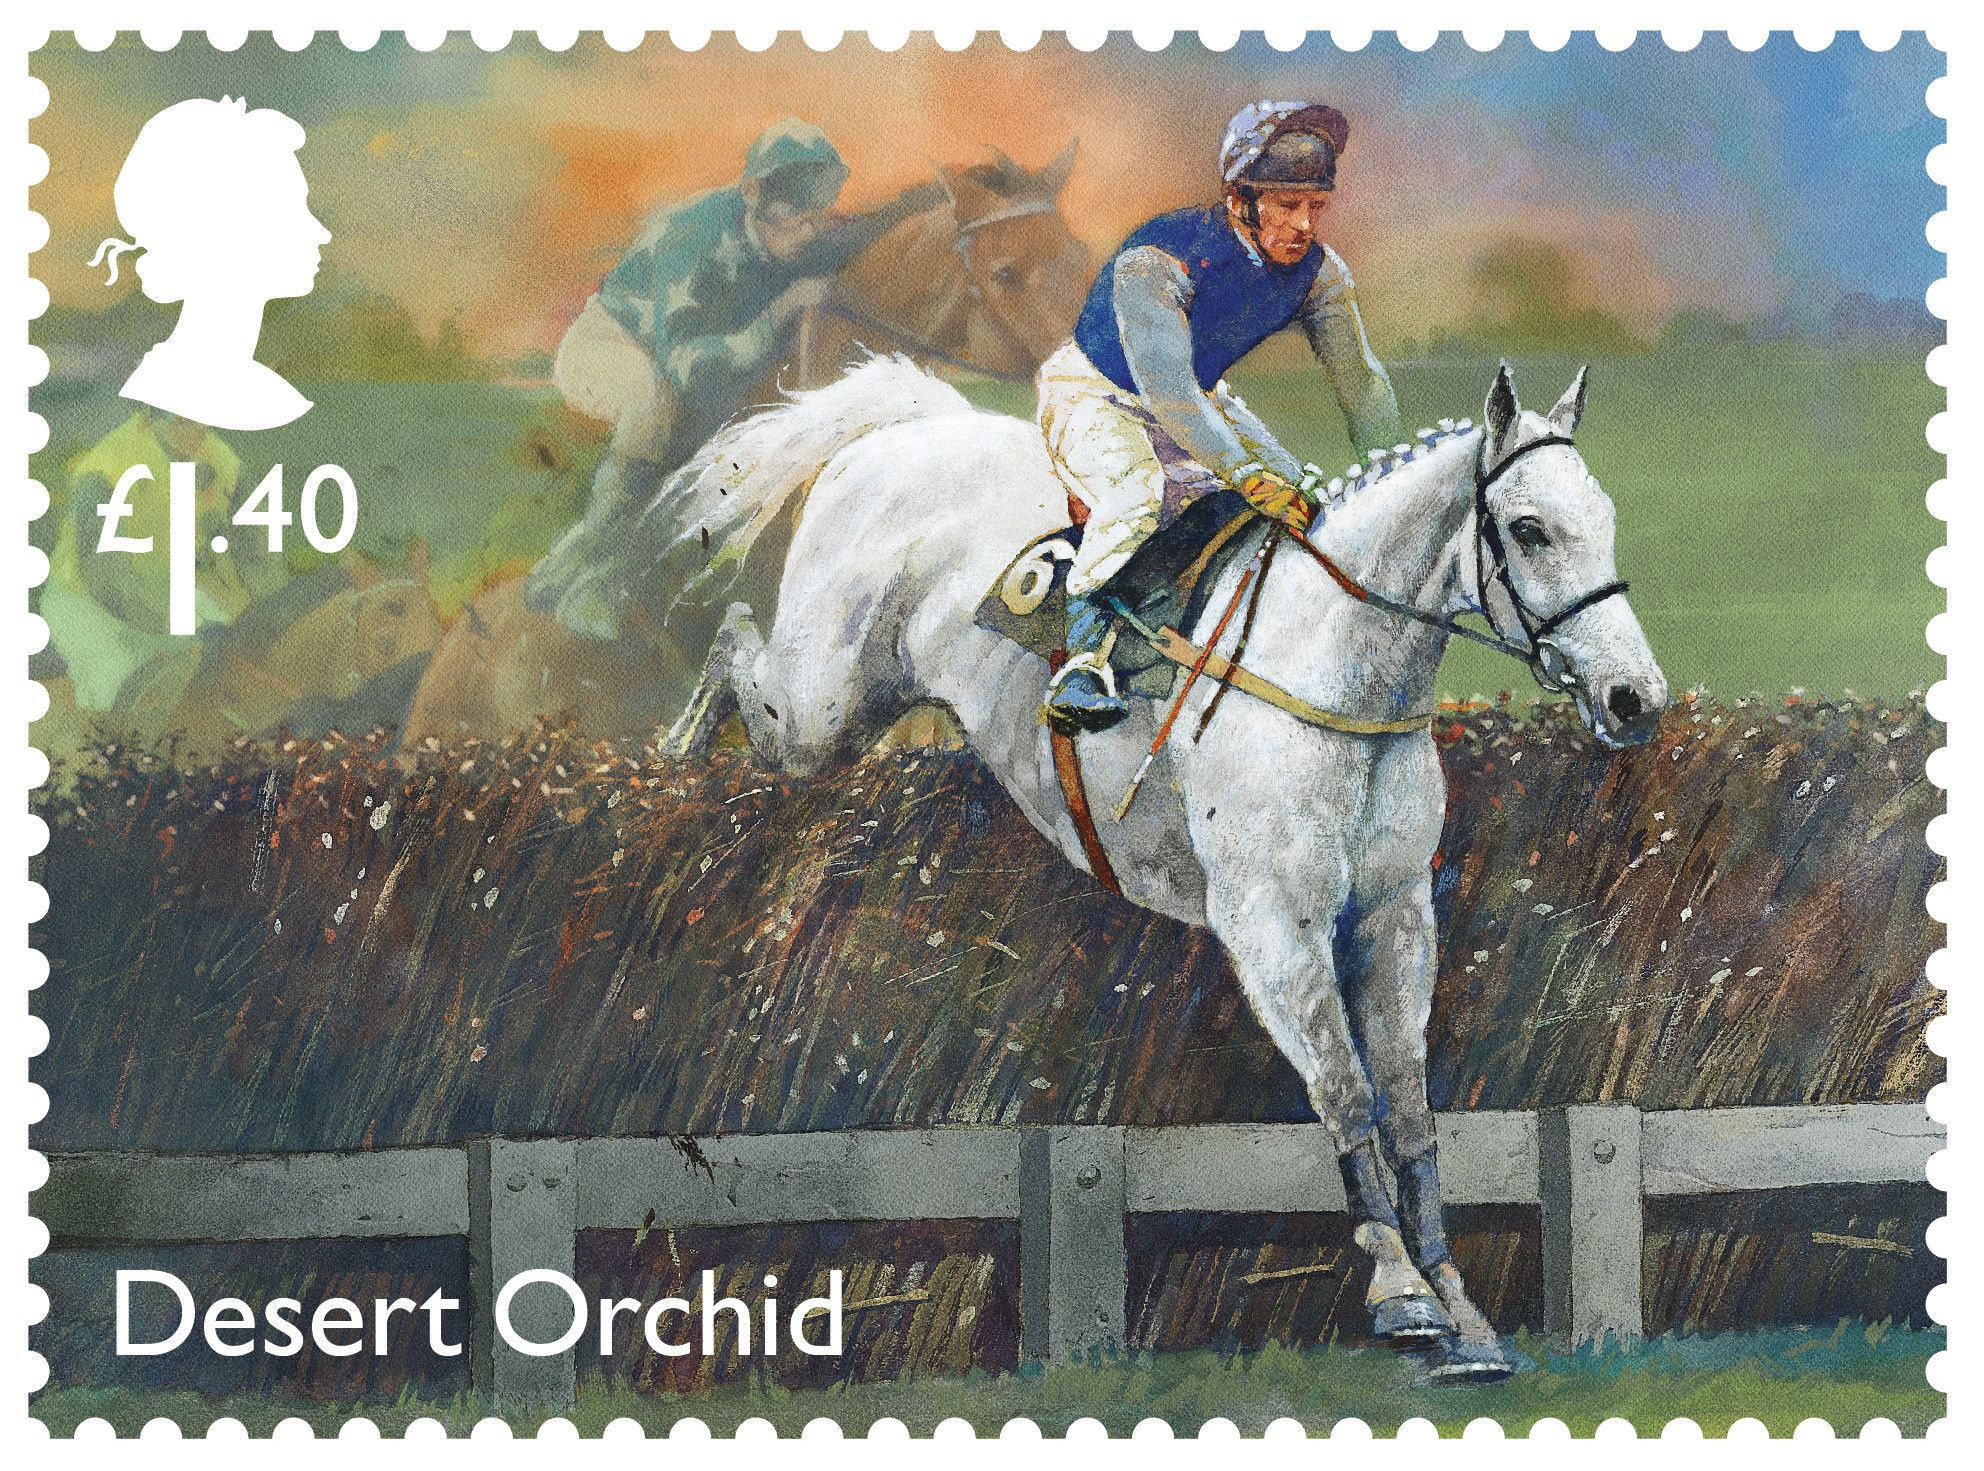 Desert Orchid's Gold Cup win captured the hearts of the nation